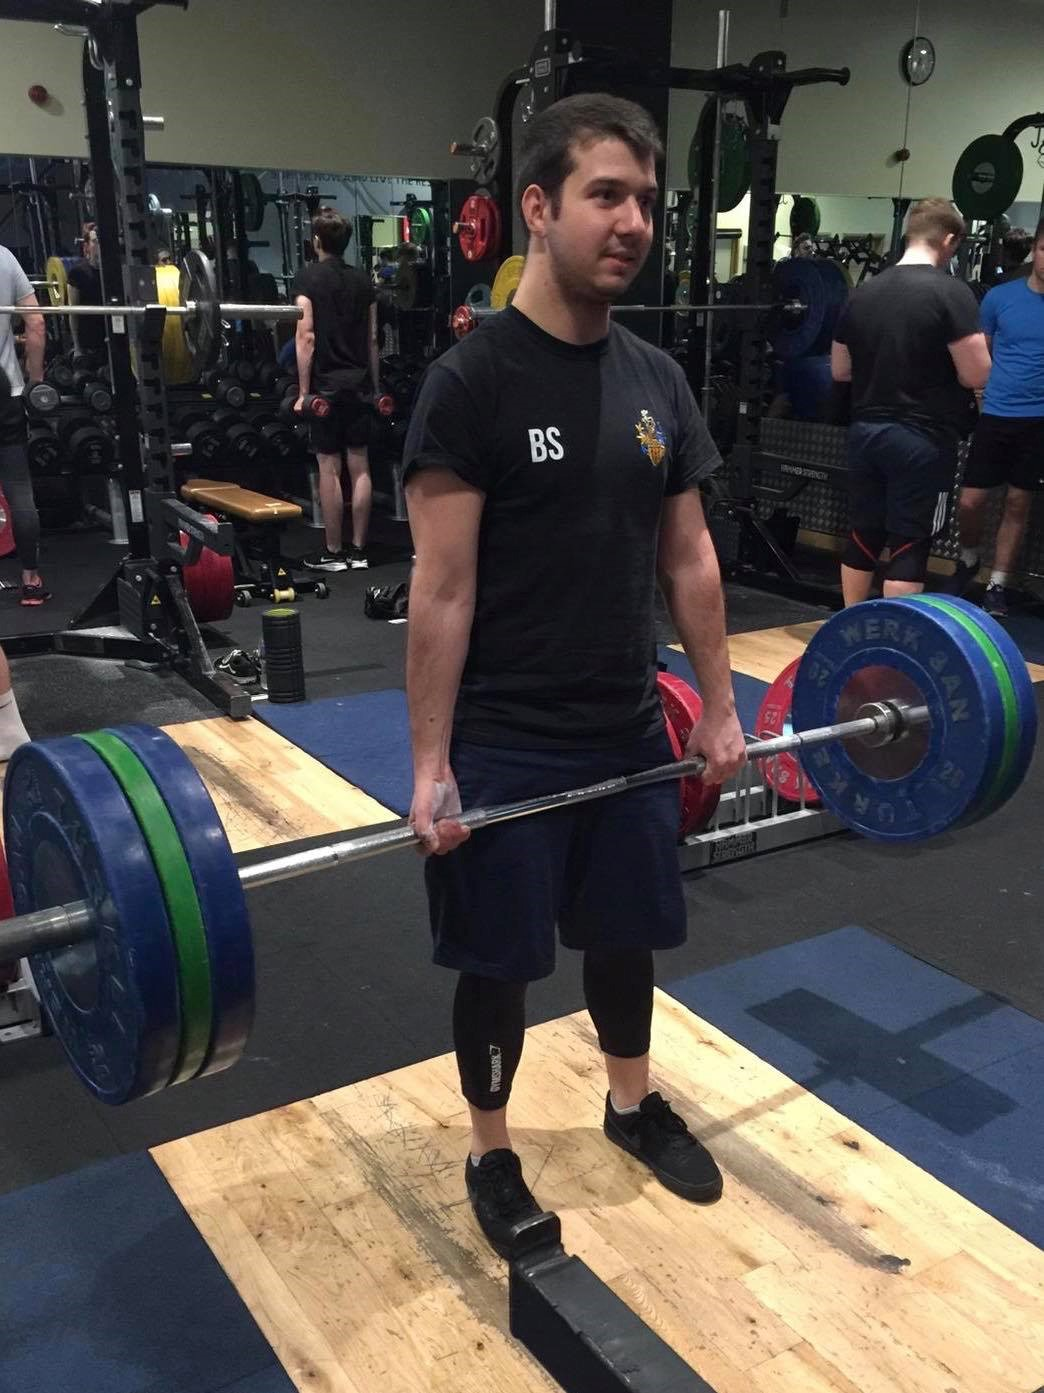 Boran in a gym powerlifting